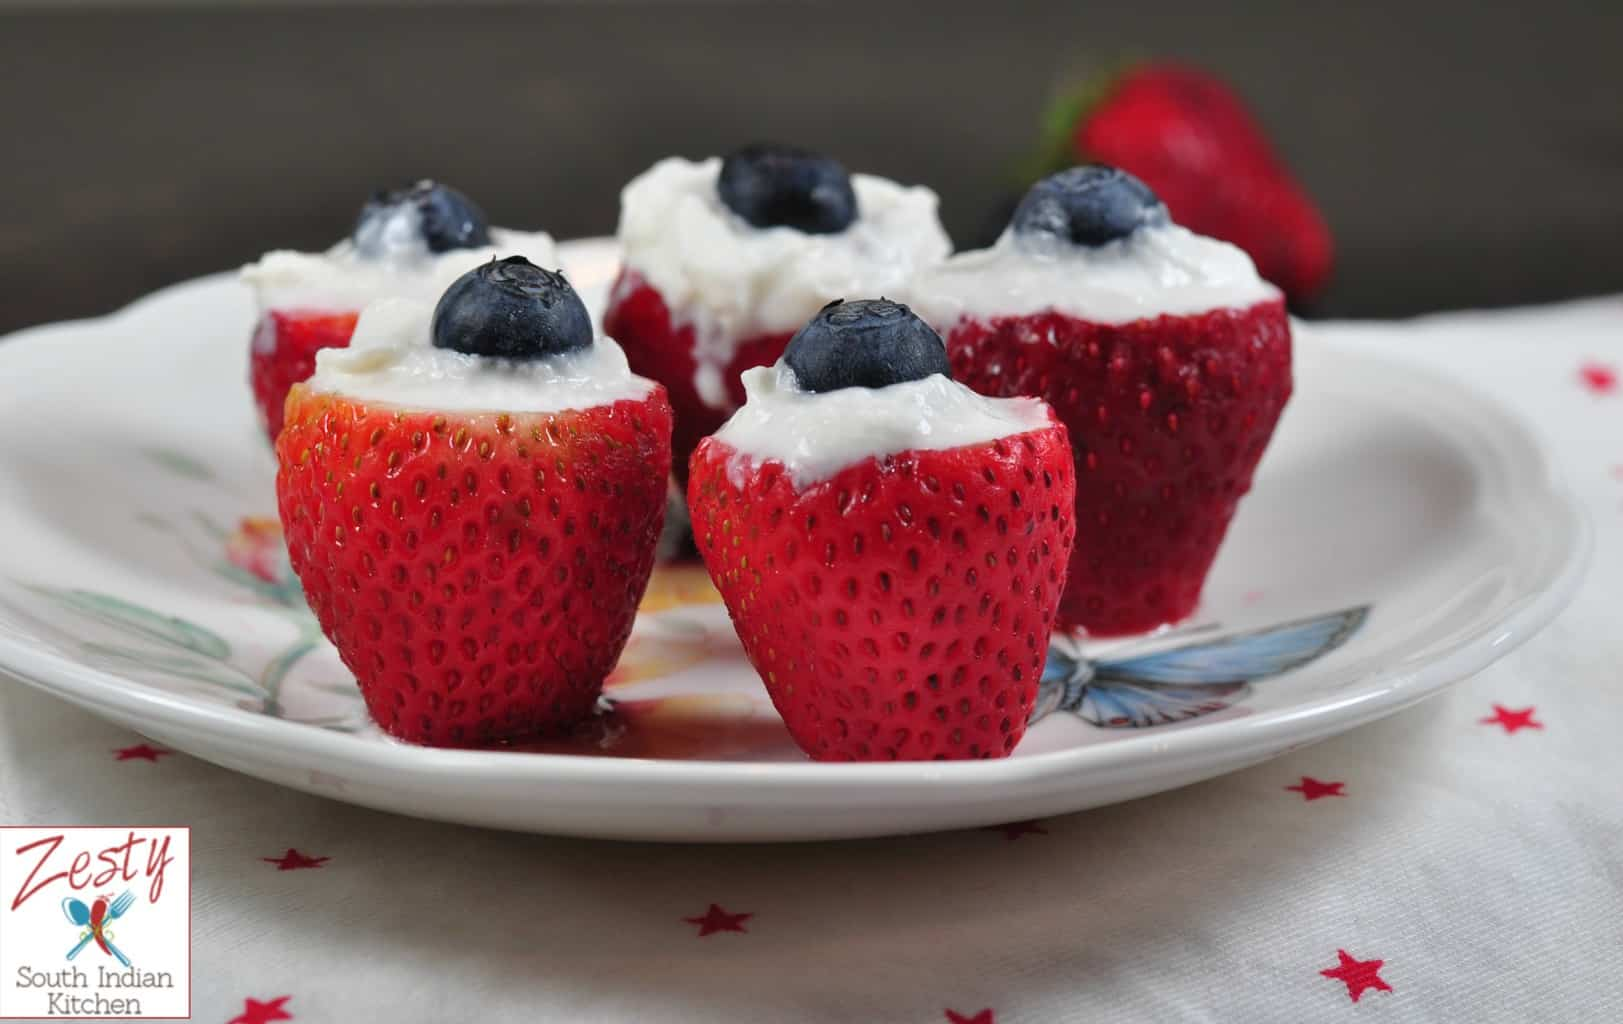 strawberry blueberry with cream red white and blue dessert